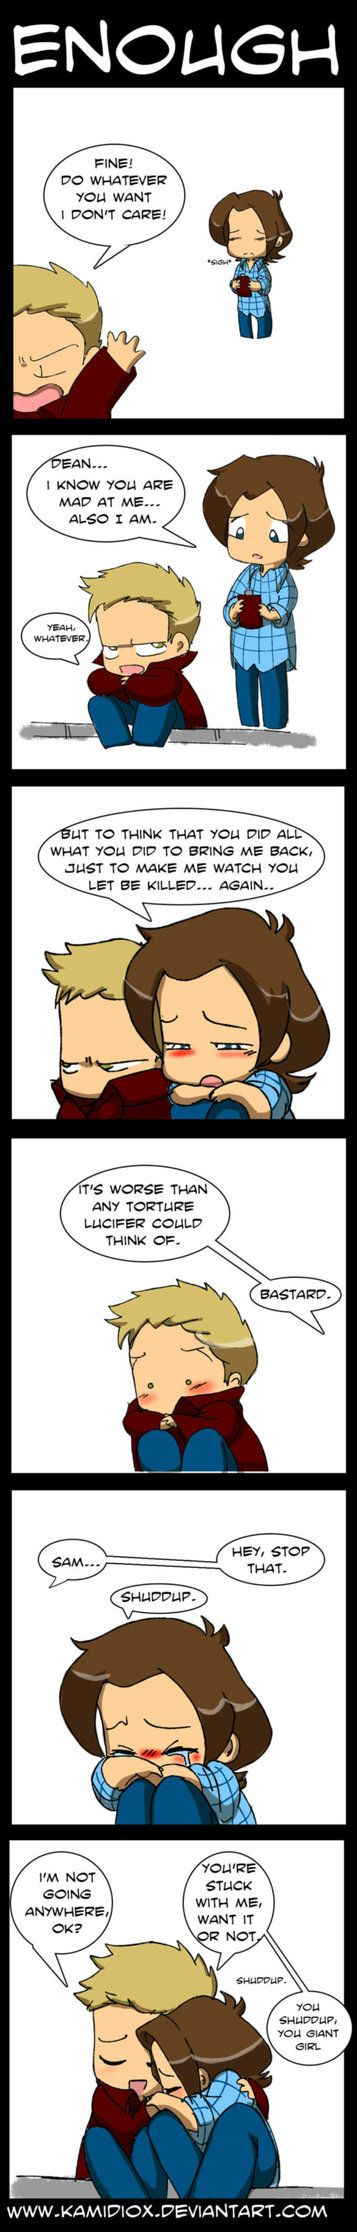 Enough pt.2 by KamiDiox on deviantART  so cute and sweet and sad!!!!!!!!!!